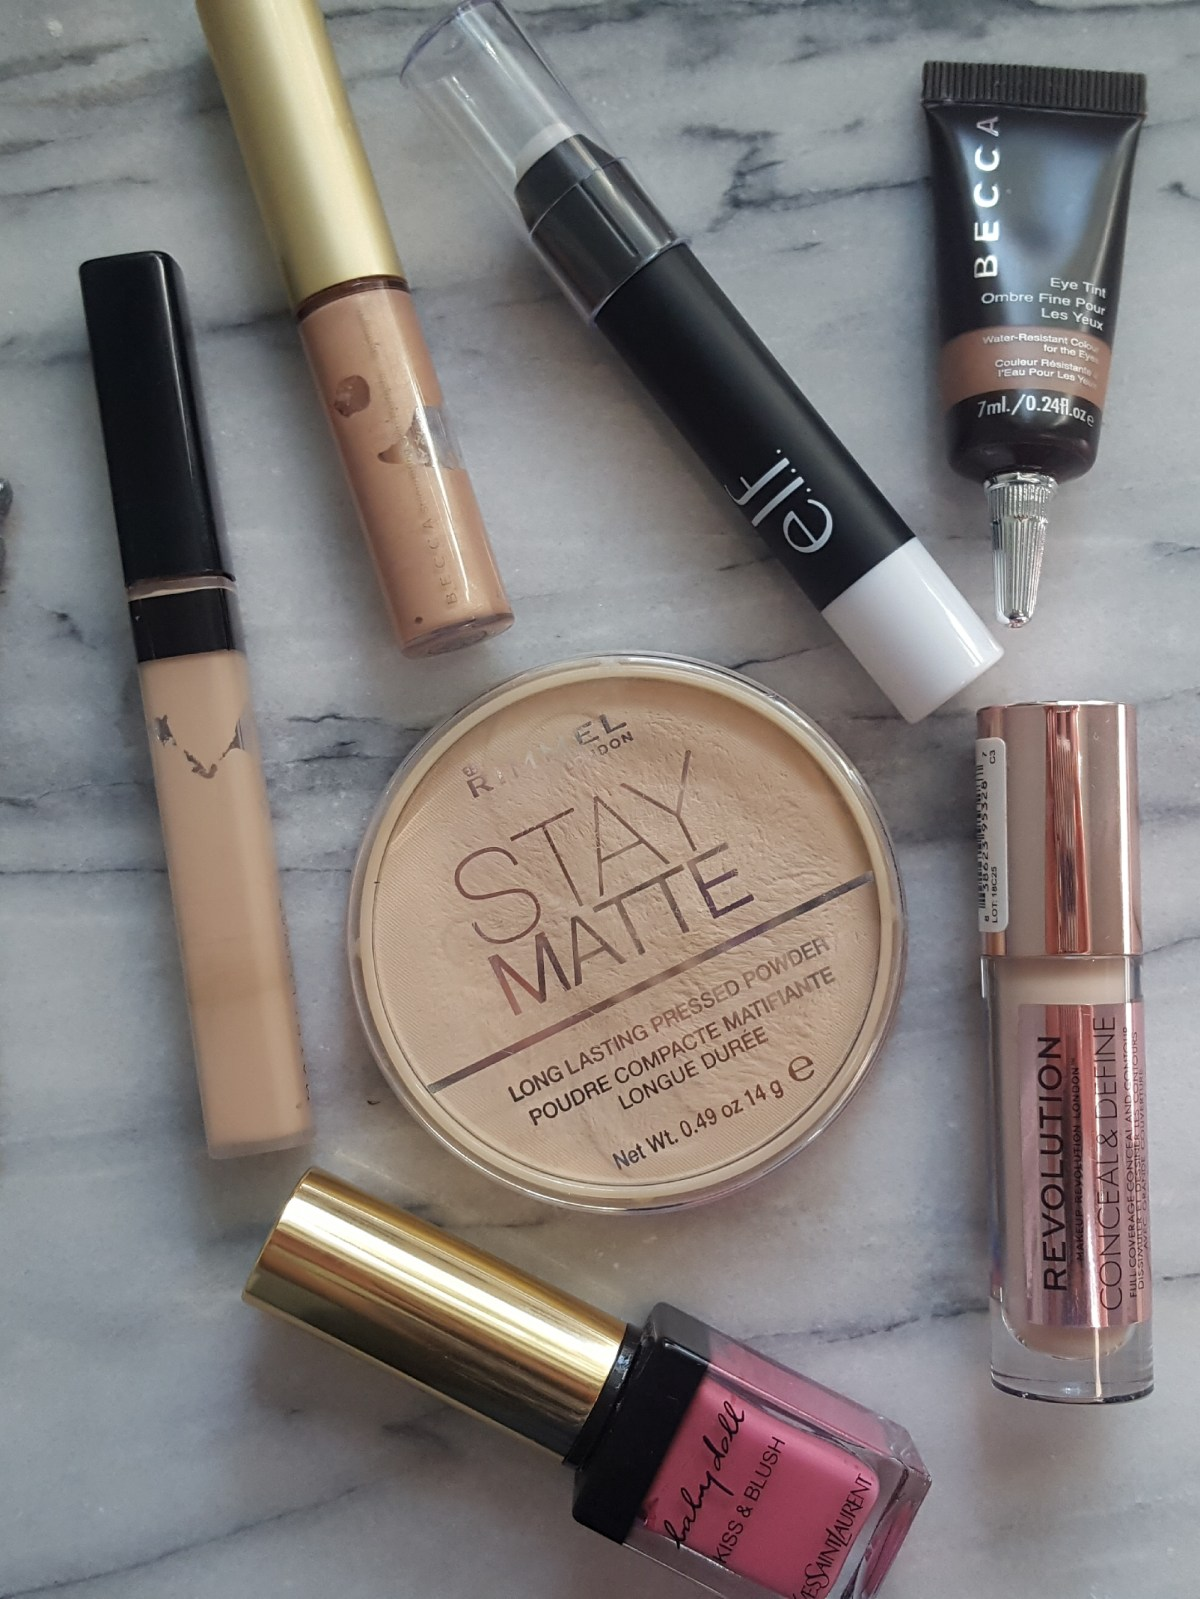 My summer no-foundation makeup routine in 5 steps